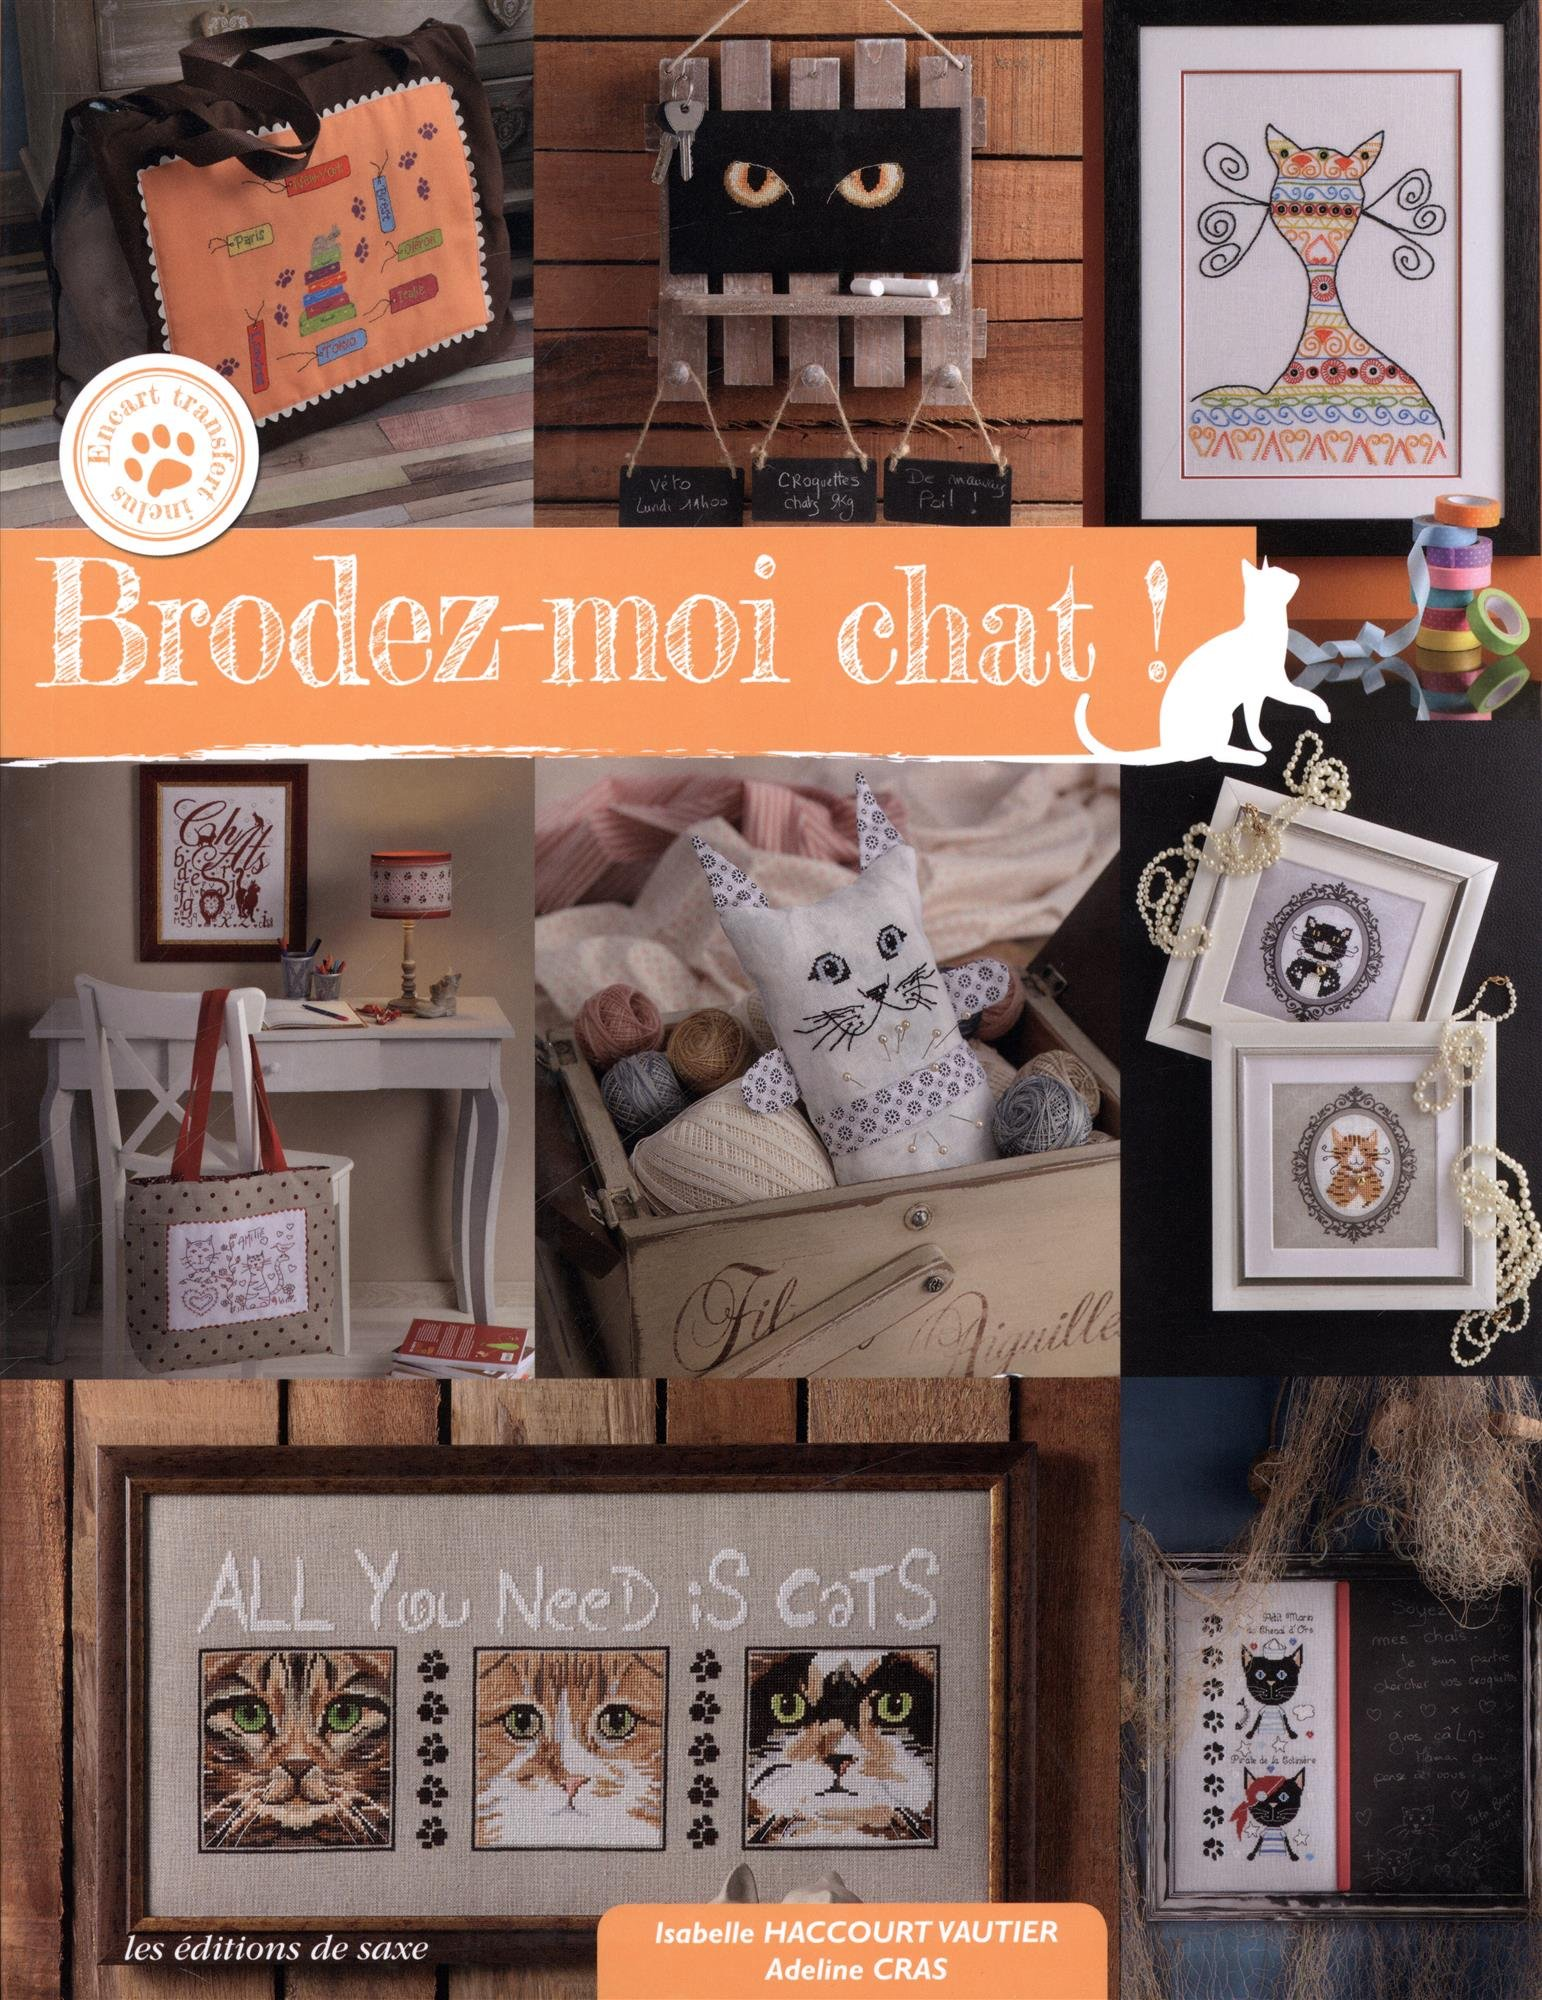 Brodez-moi chat !